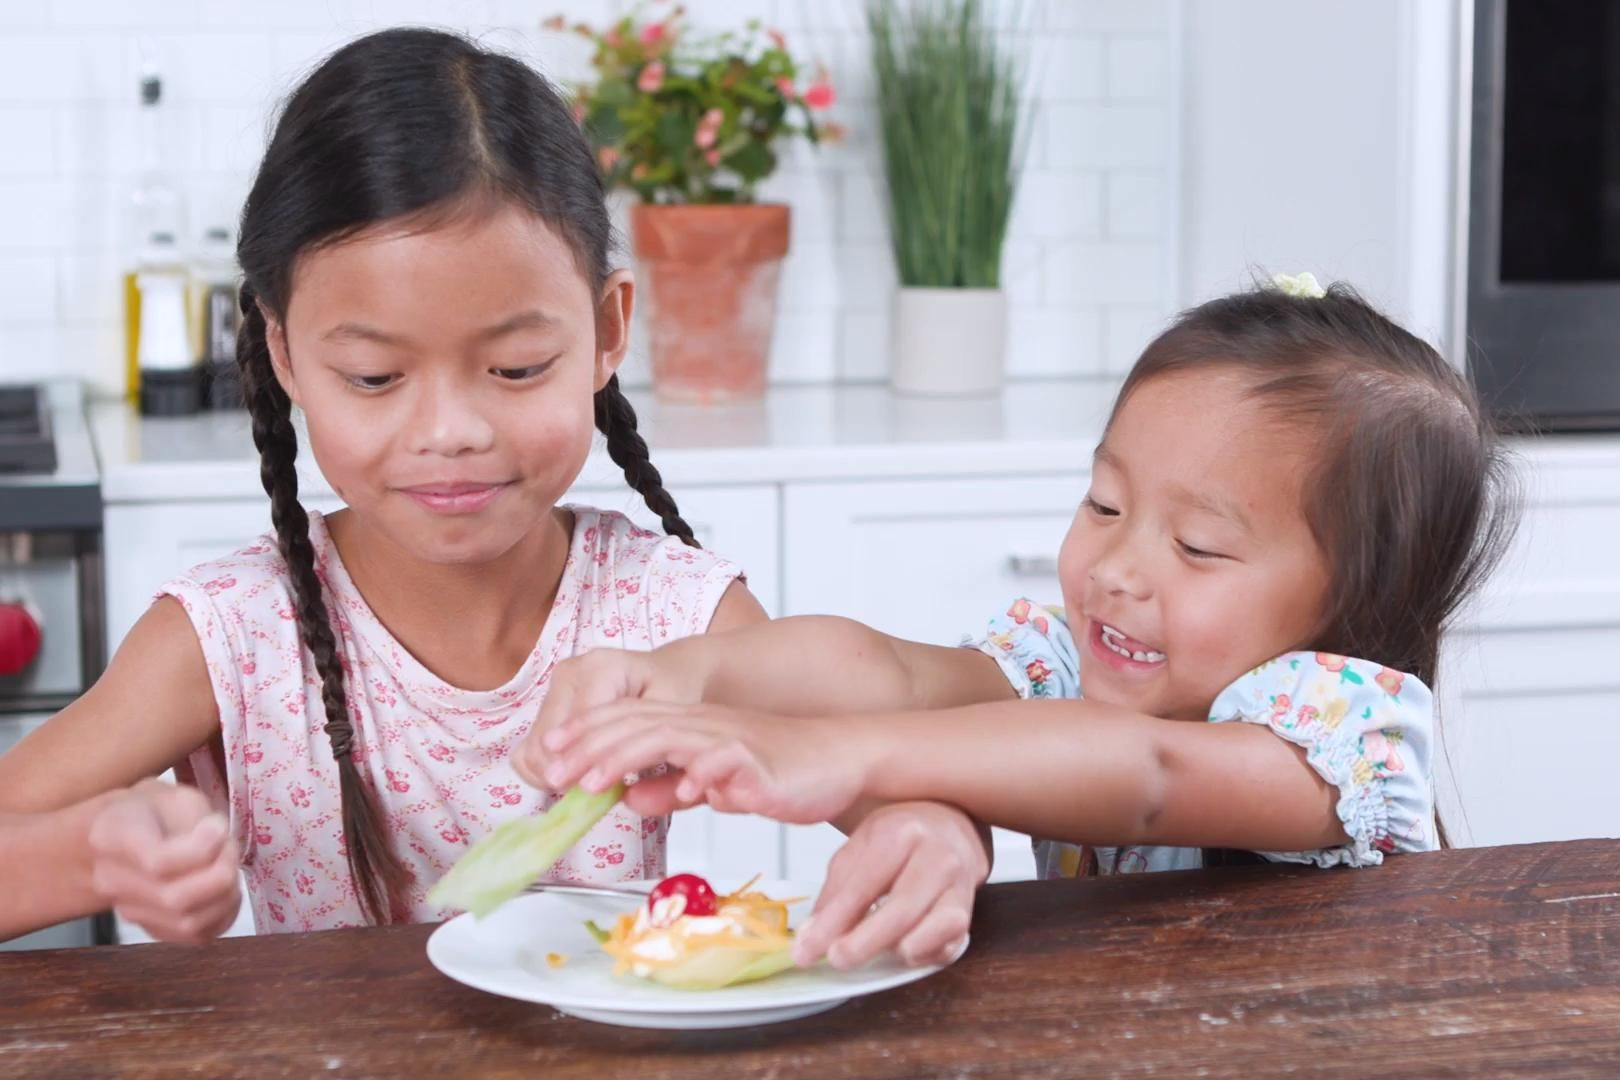 Southern Kids Have Mixed Reviews For Pear-Mayo Salad